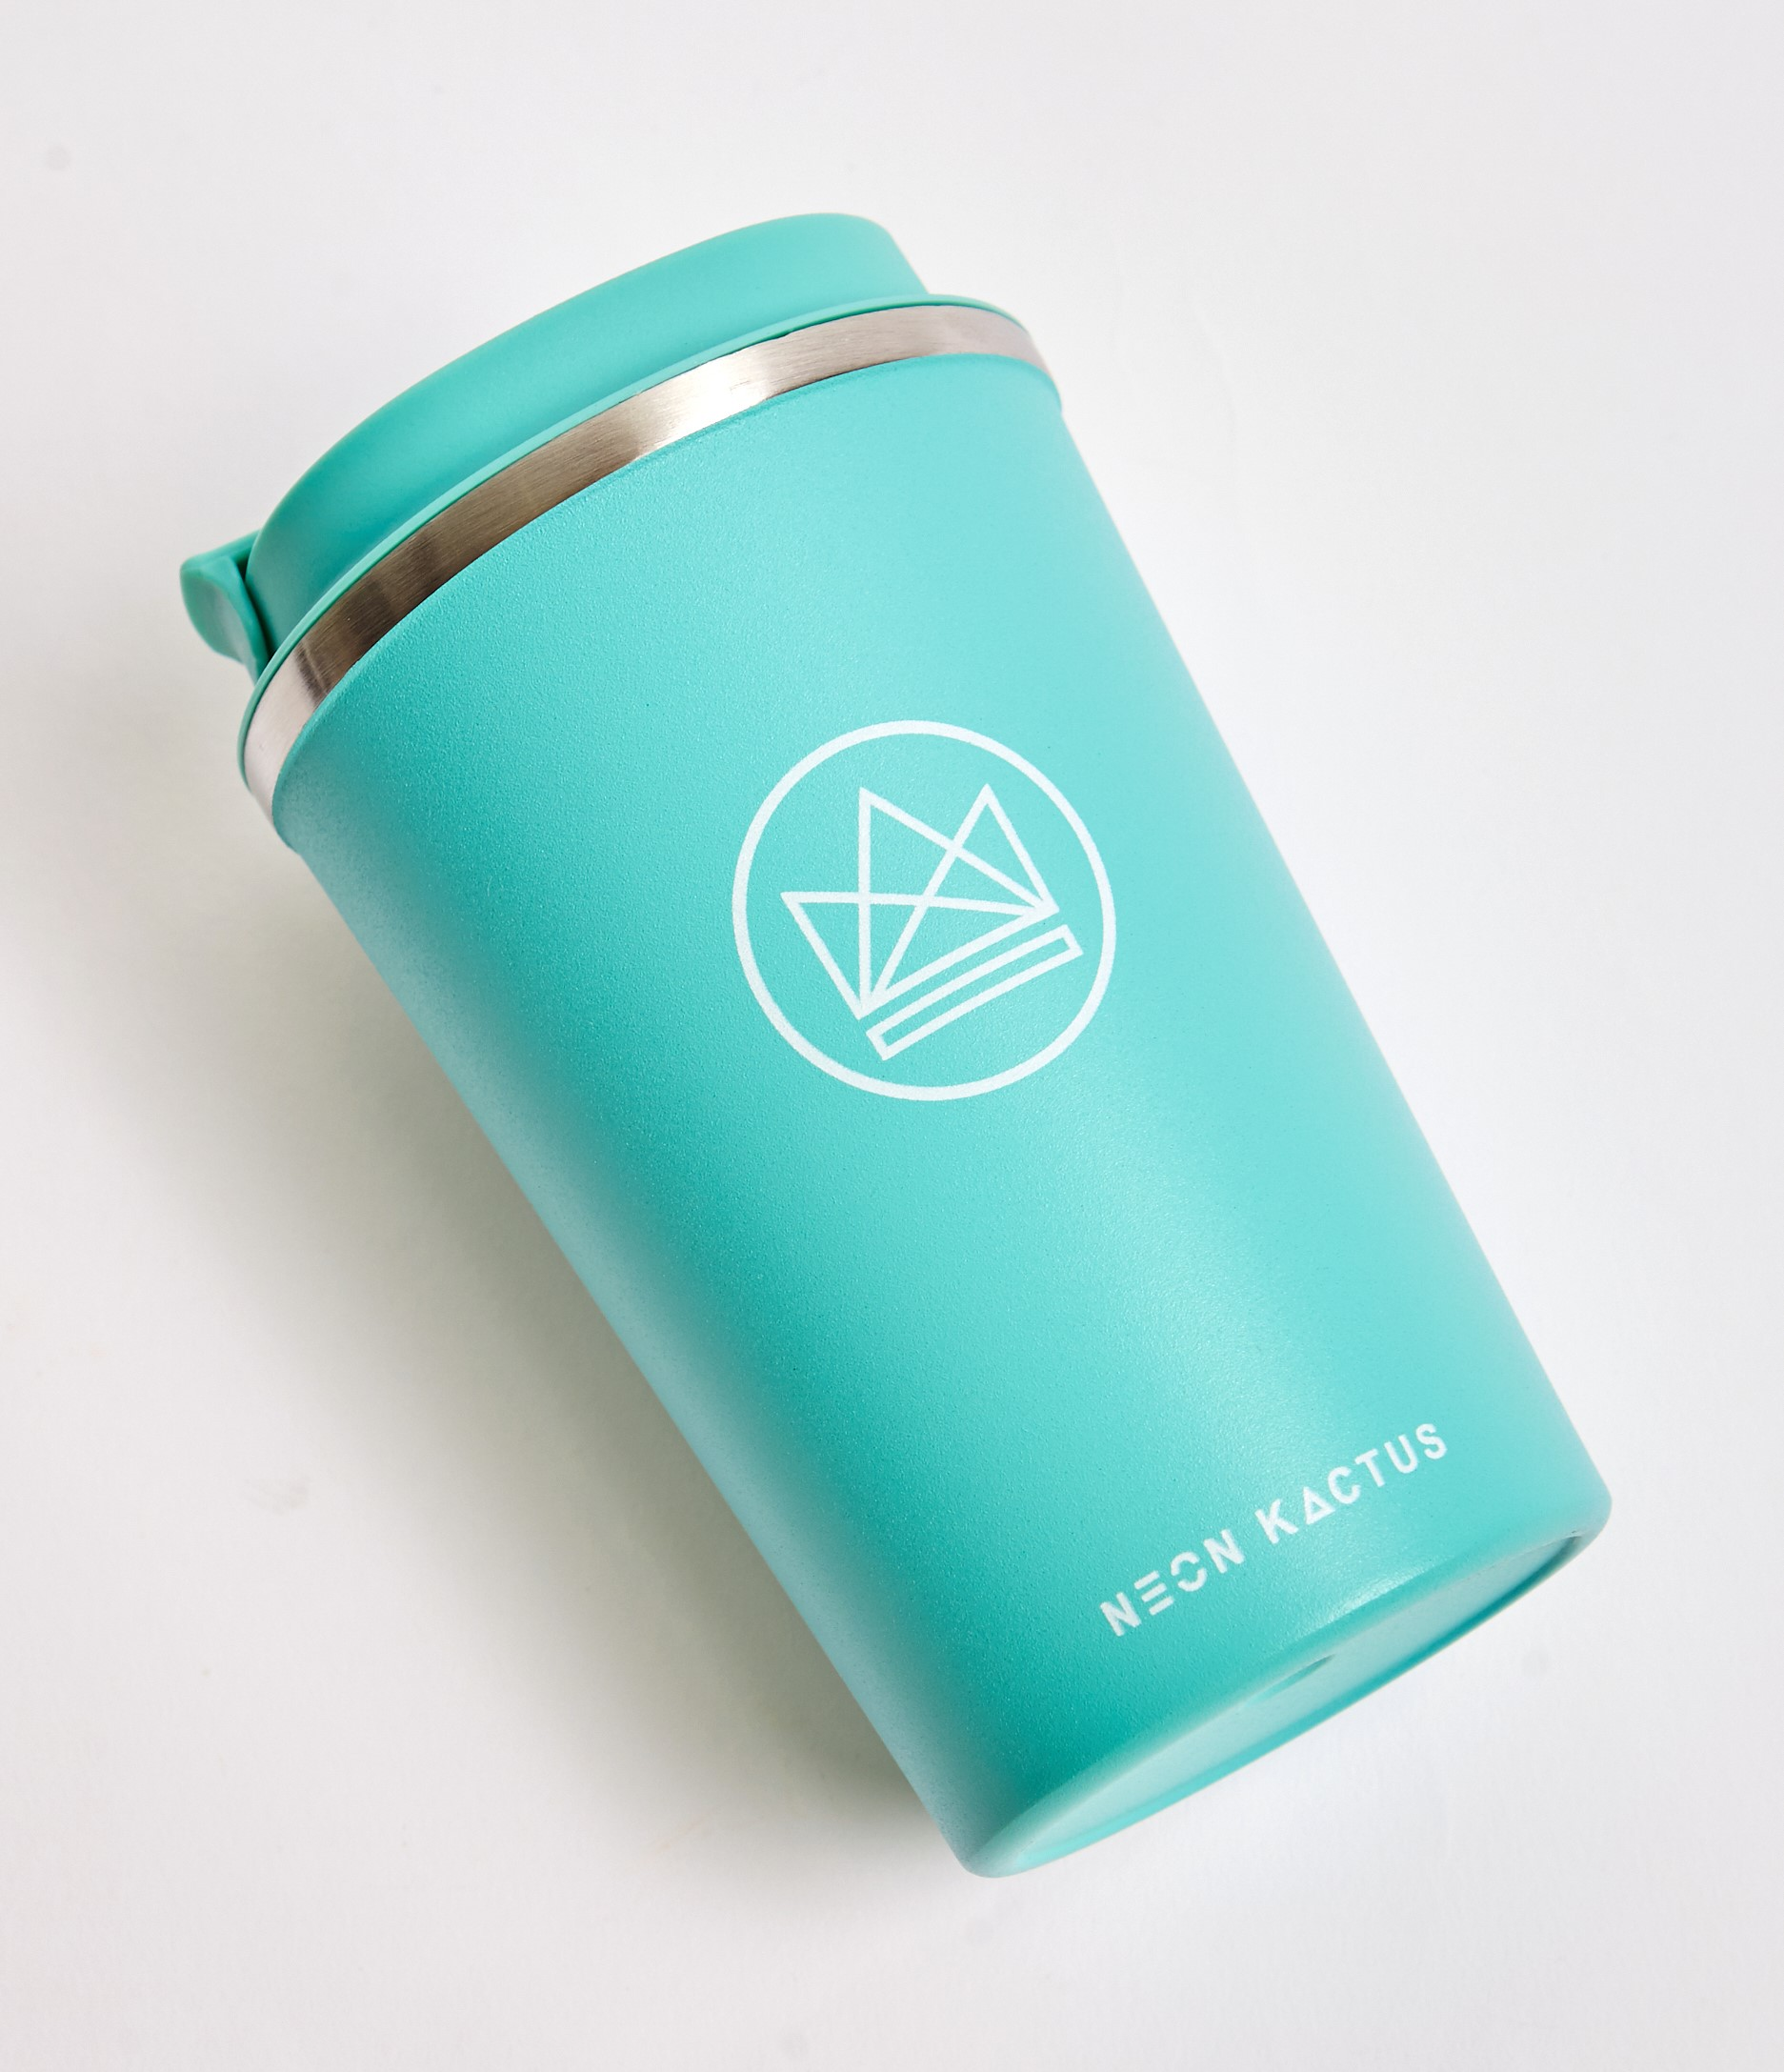 Neon Kactus -  Stainless Steel Coffee Cup - Mint Green 12oz